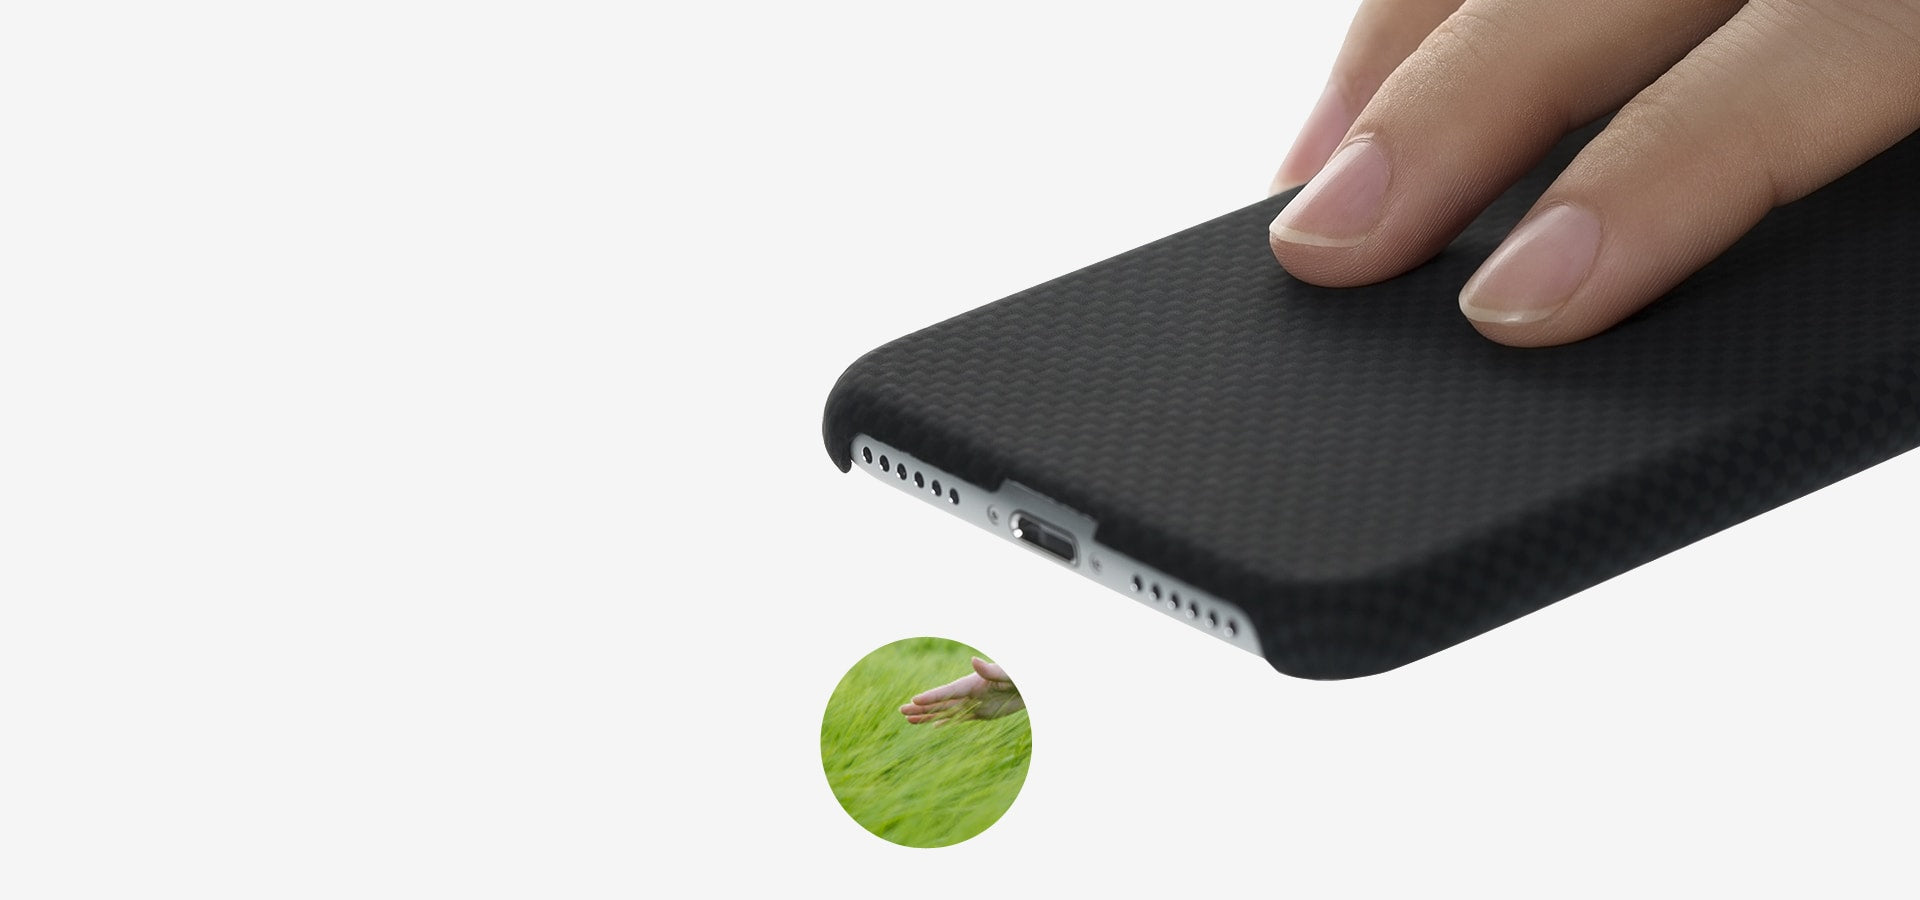 3D-Grip iphone 7 case